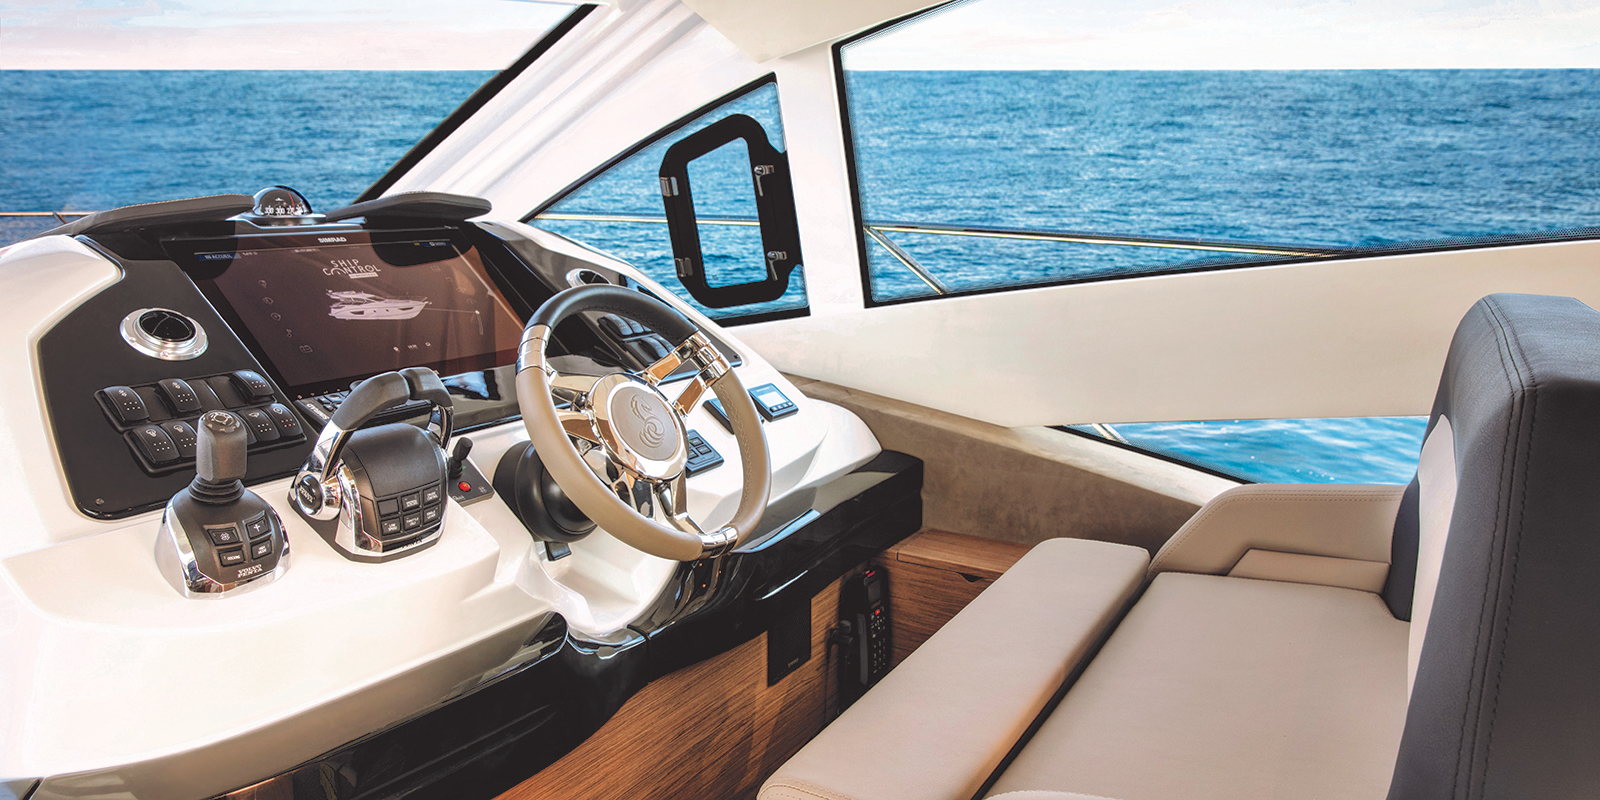 Beneteau Gran Turismo 50 — At the Helm